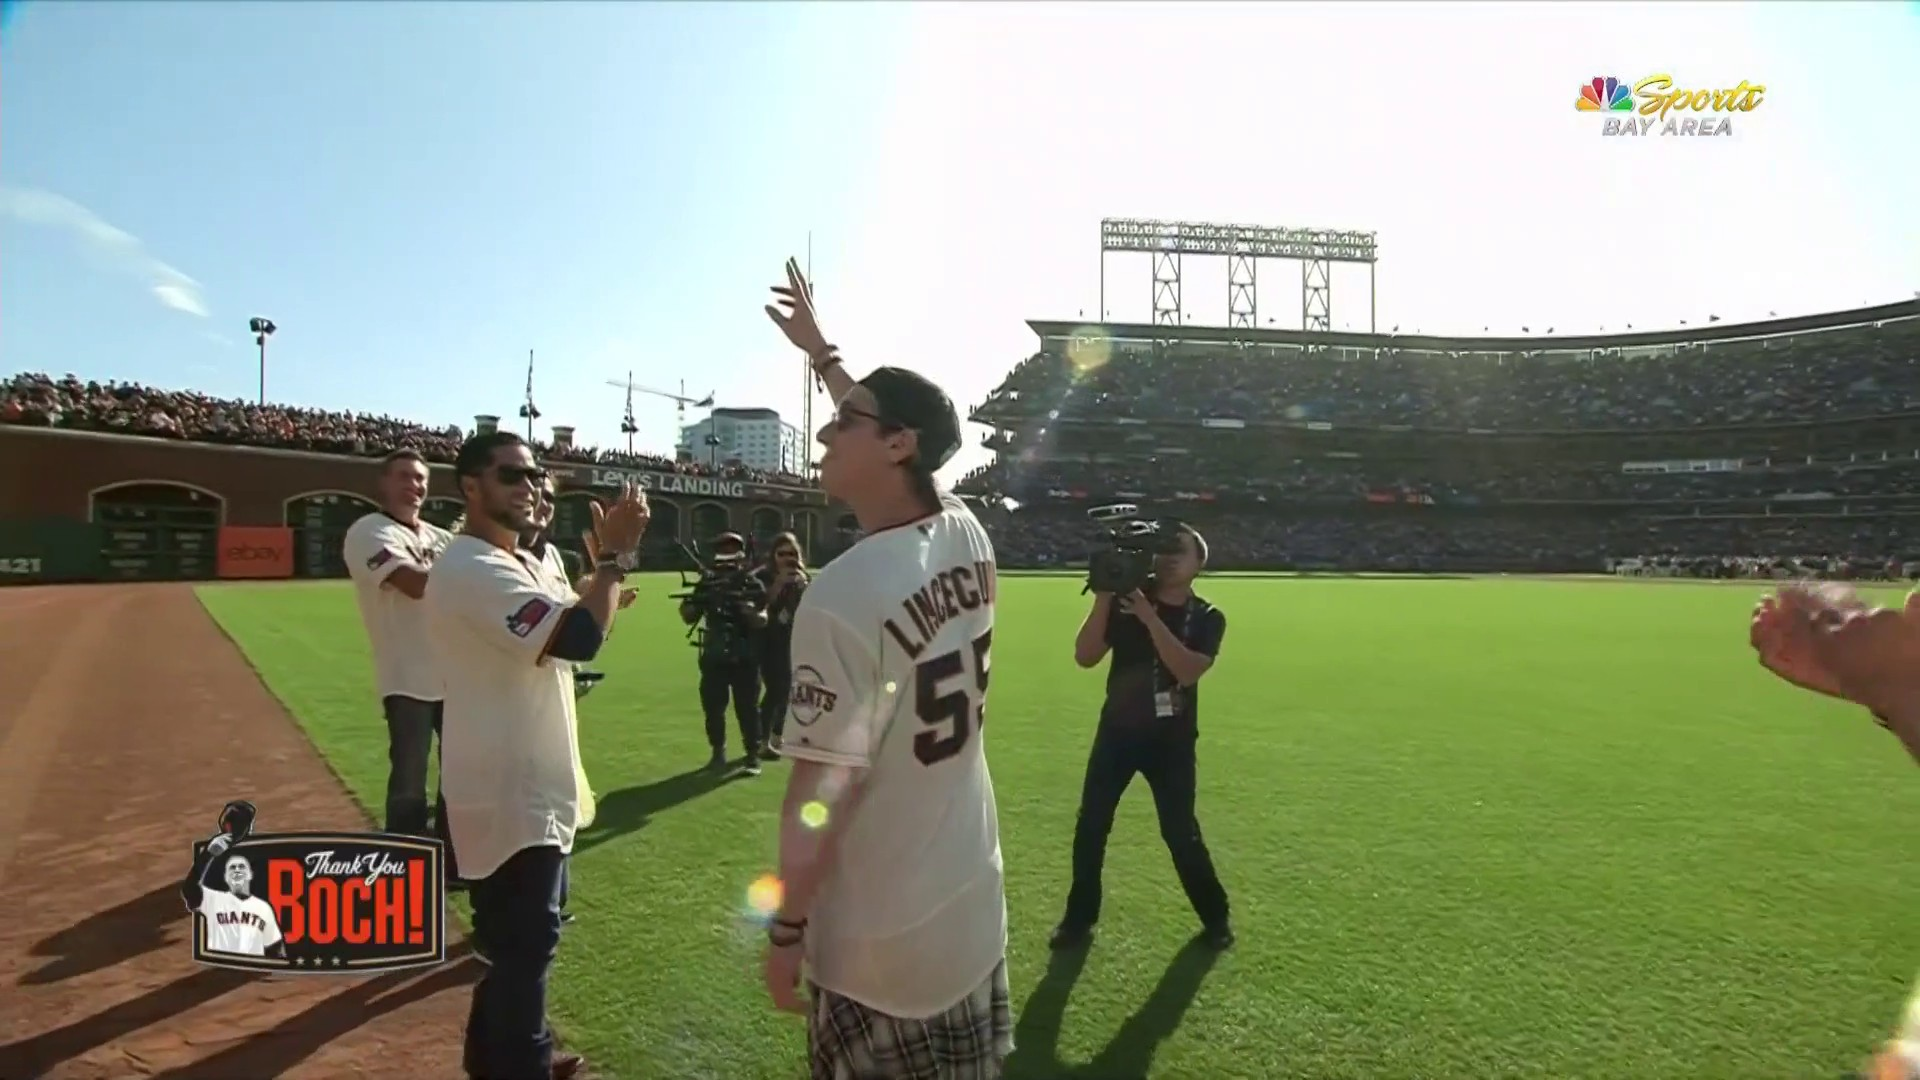 Tim Lincecum gets massive ovation, moment with Bruce Bochy in return